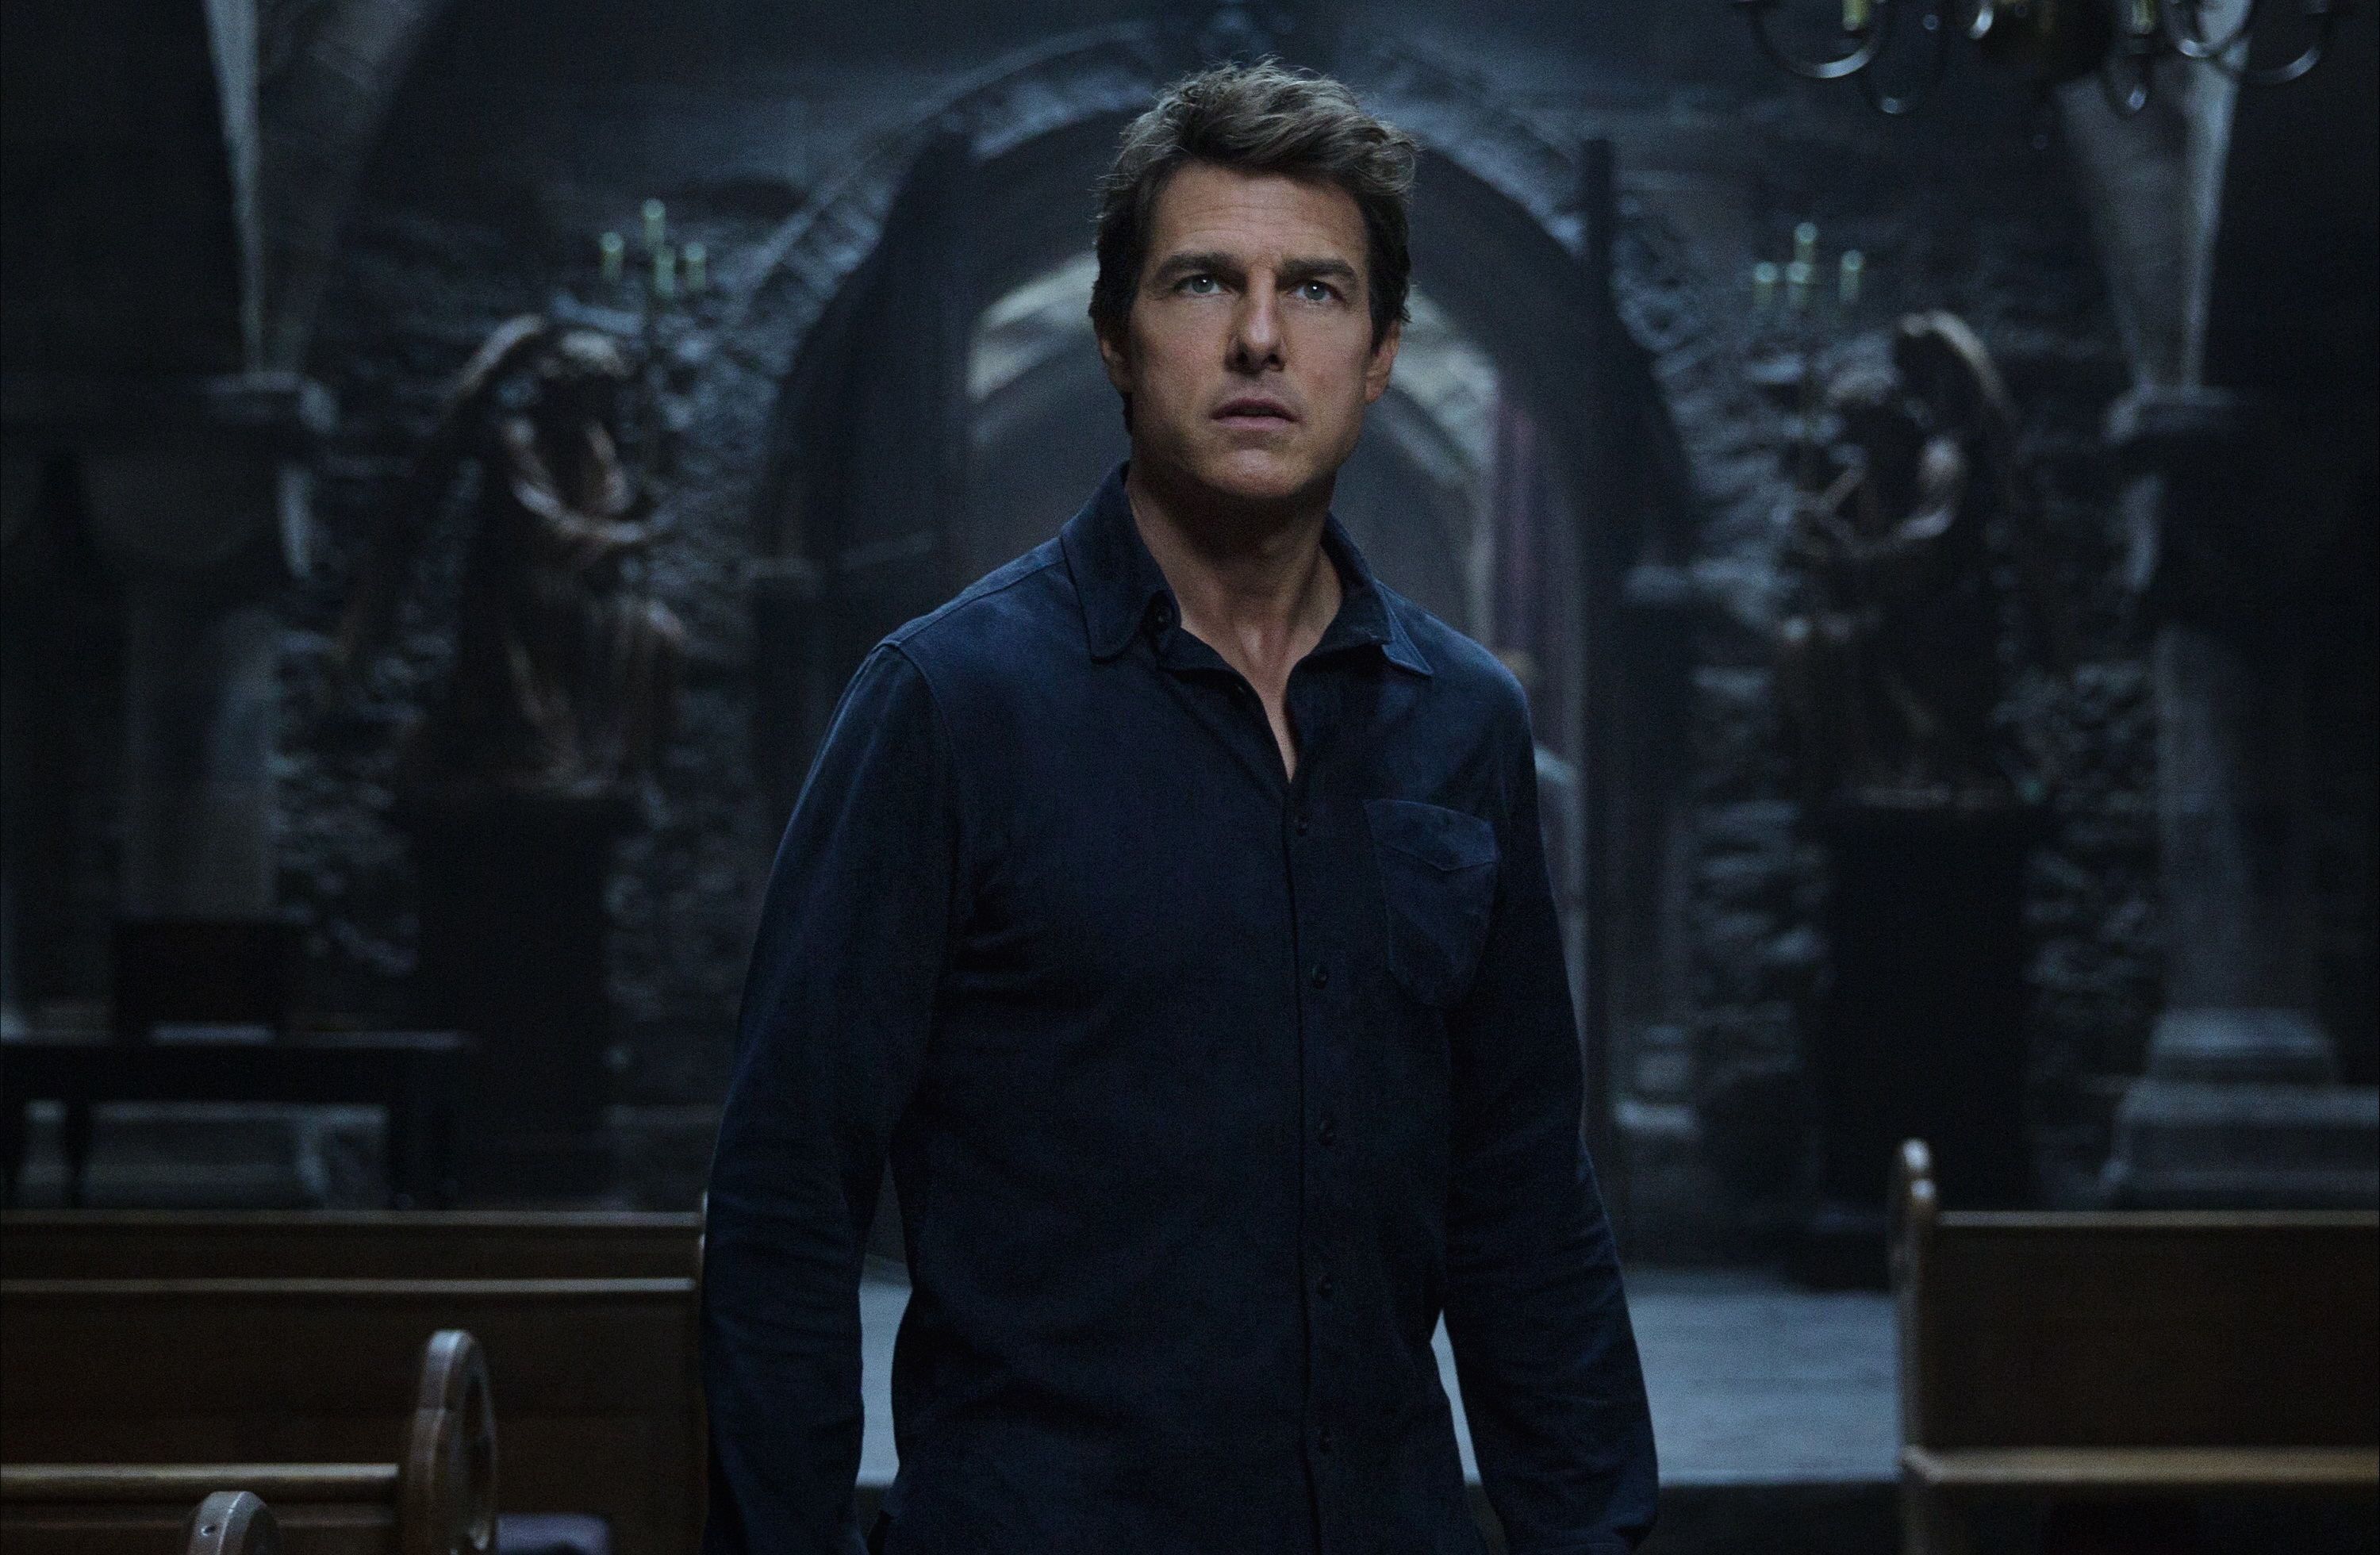 """Tom Cruise stars in """"The Mummy,"""" which was released in the U.S. on June 9, 2017."""